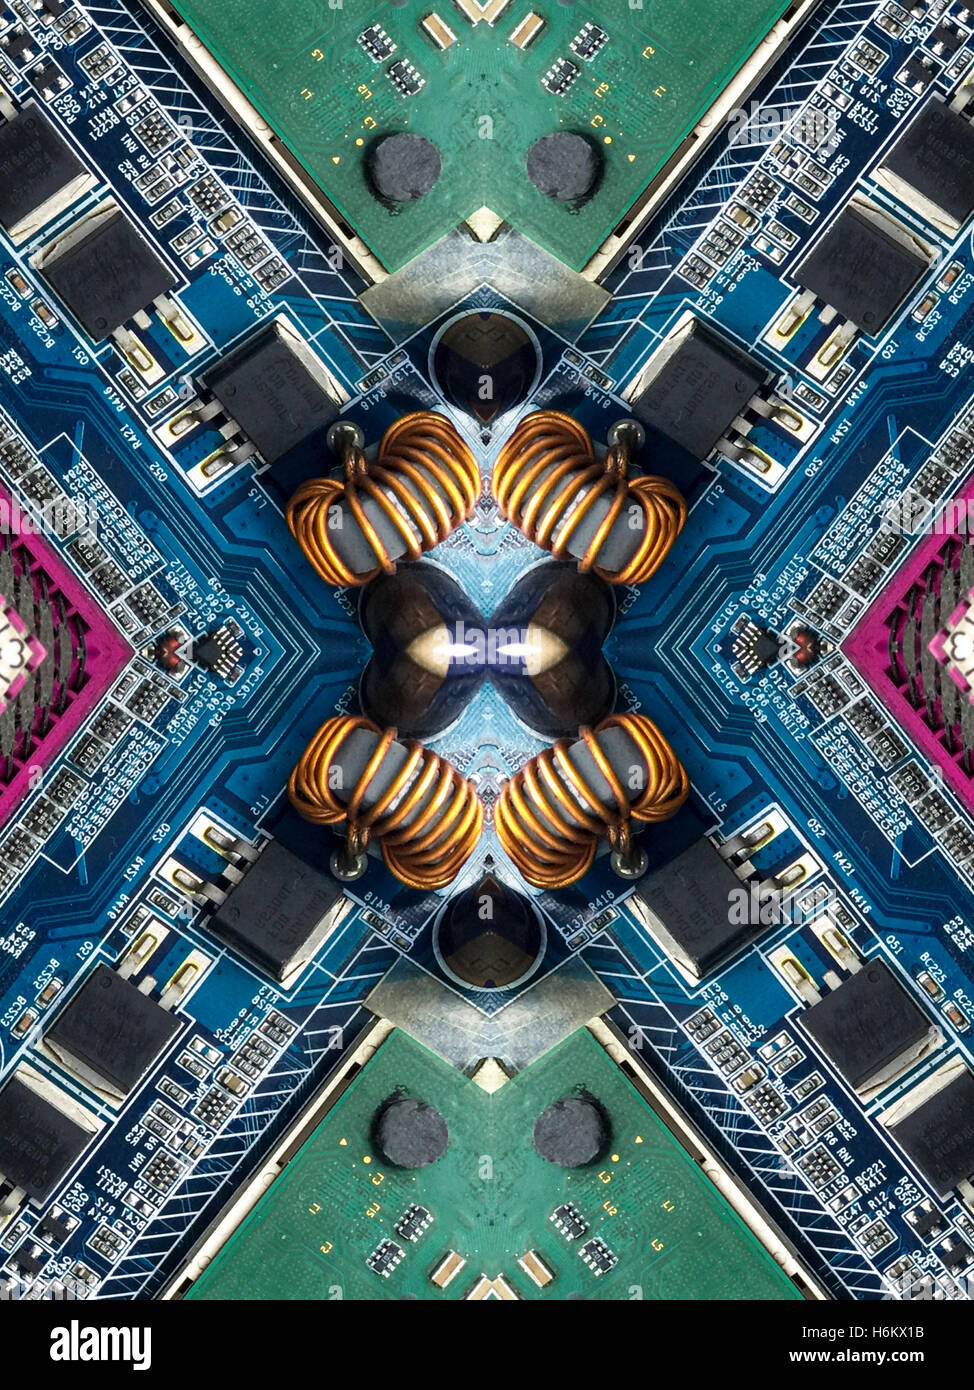 A kaleidoscope image made from the inside of a computer - its motherboard, computer chip, and electronic parts. - Stock Image